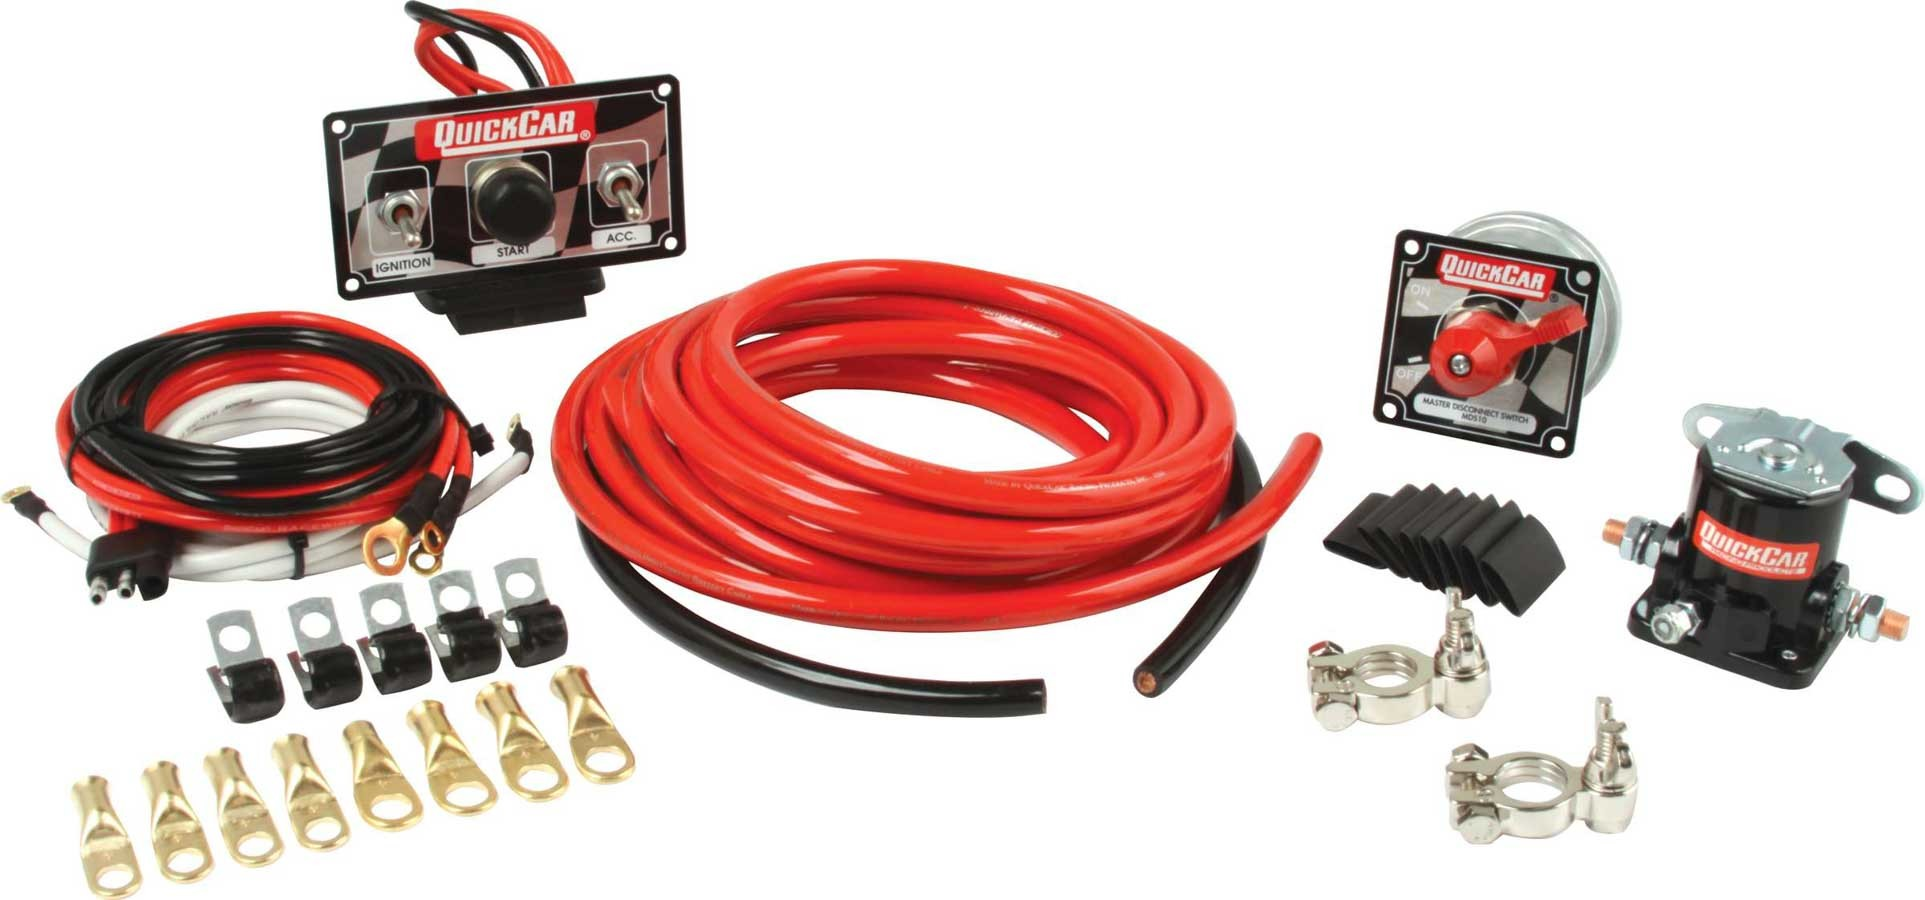 QuickCar 50-232 Wiring Kit, Ignition / Battery, Premium, Battery Cable / Battery Disconnect / Solenoid / Switch Panel / Terminals, 4 Gauge, Kit